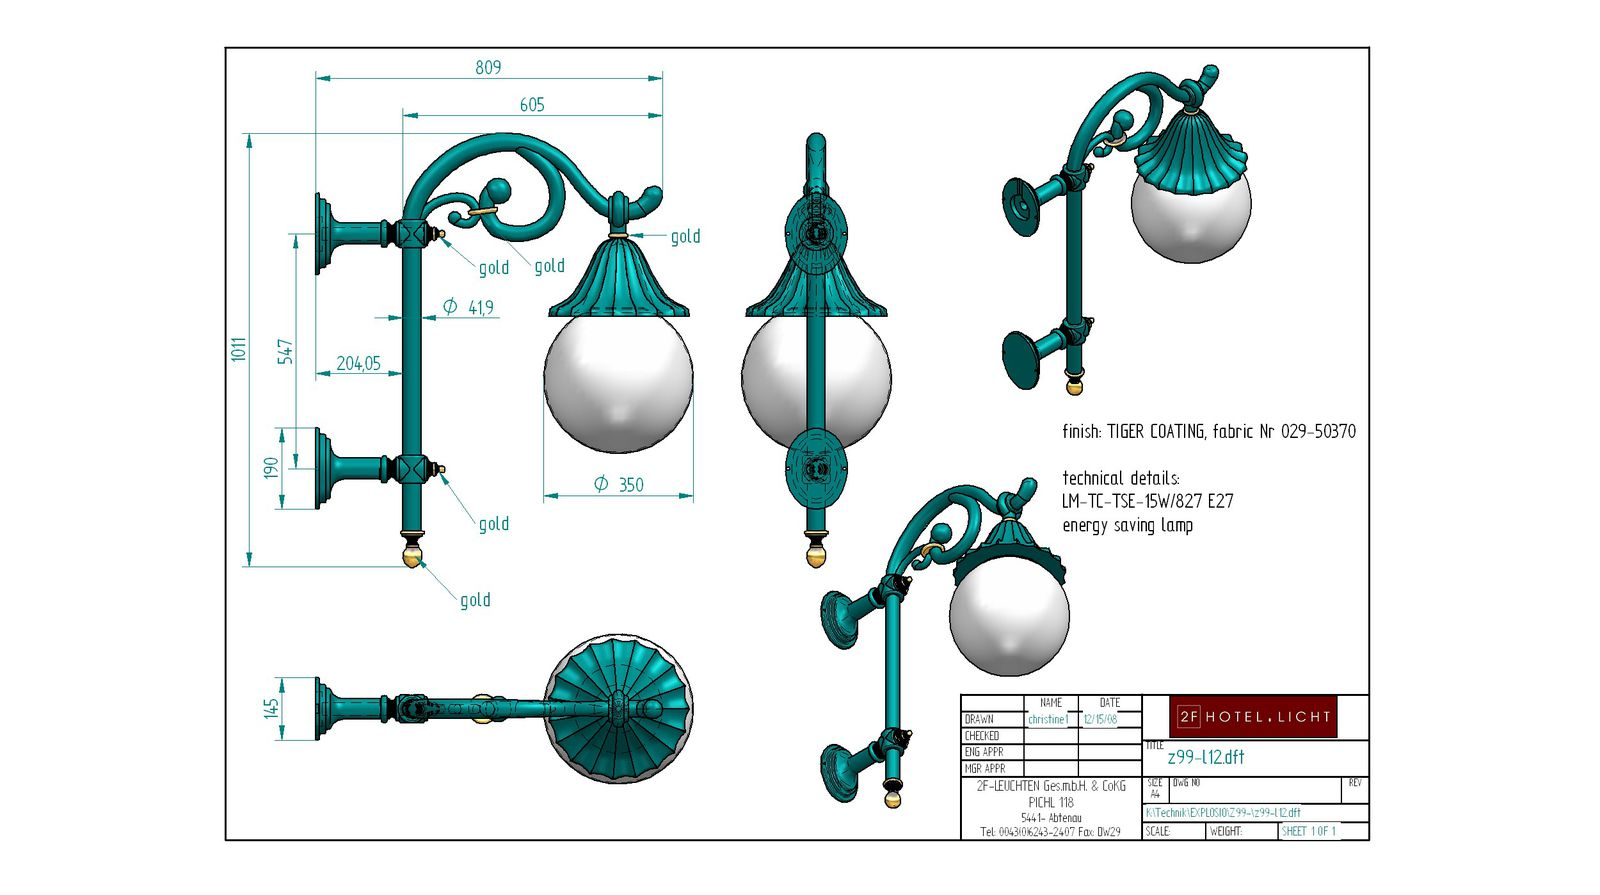 Wall lamp H=1011 B=809 technical details: 2x13W GX24q-1